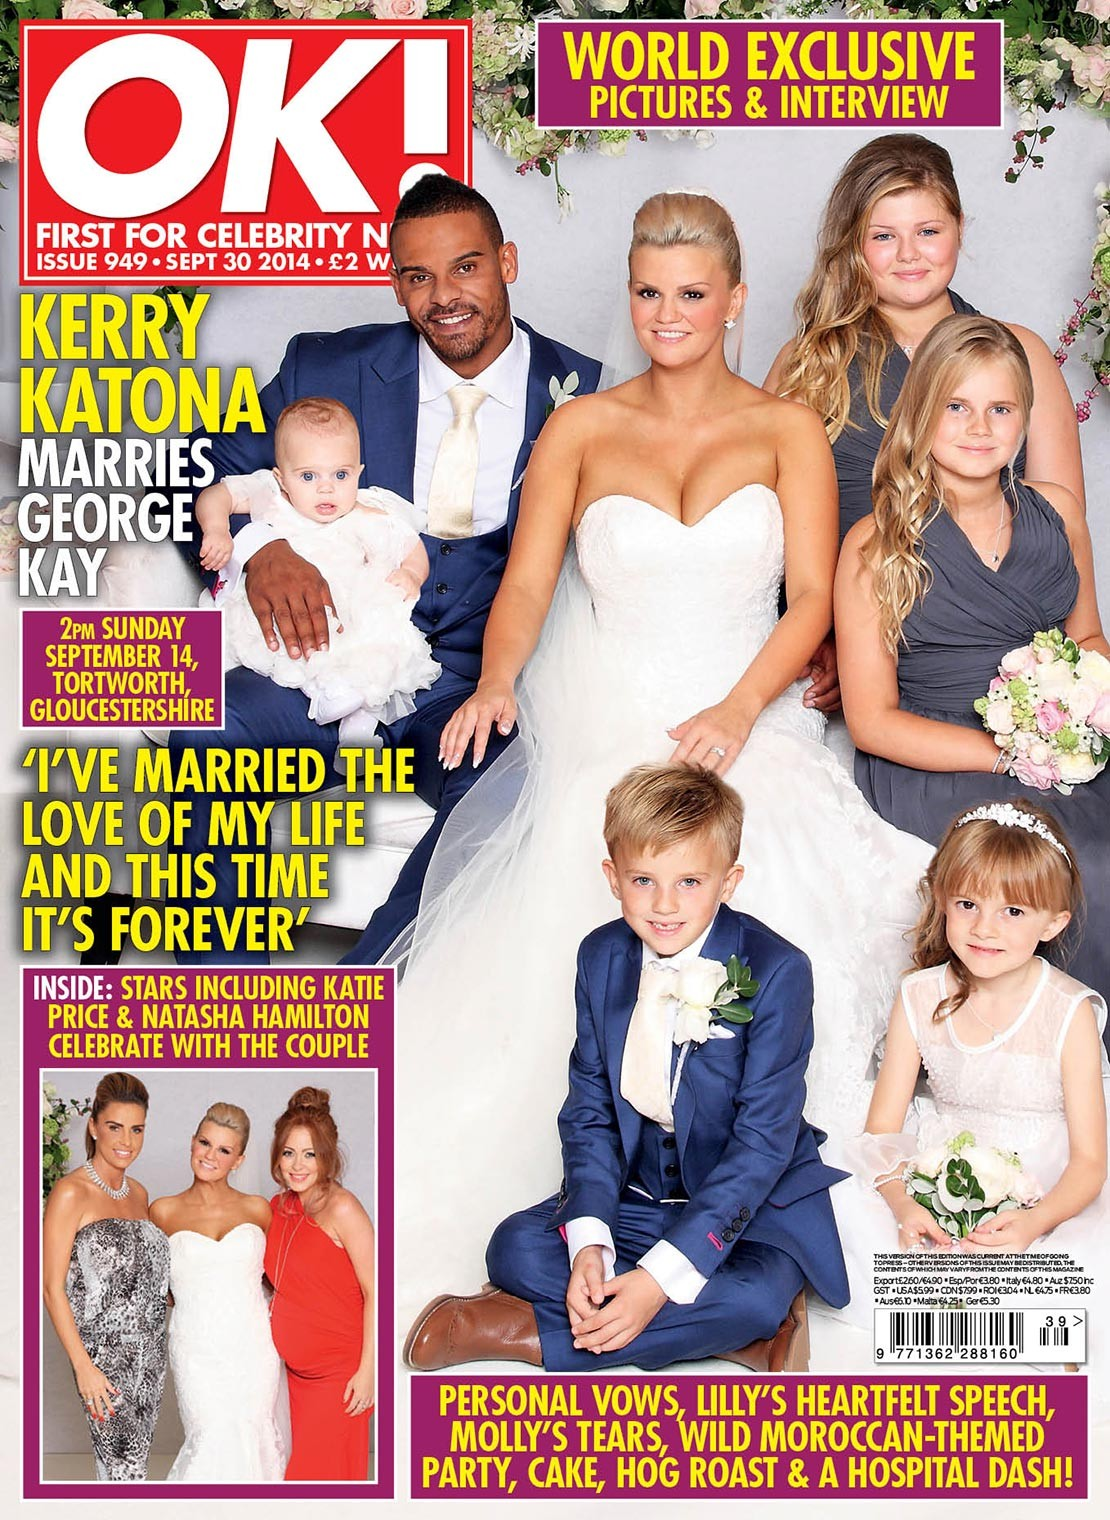 kerry-katonas-family-wedding-pics-and-why-katie-price-pulled-out-of-being-bridesmaid_61165